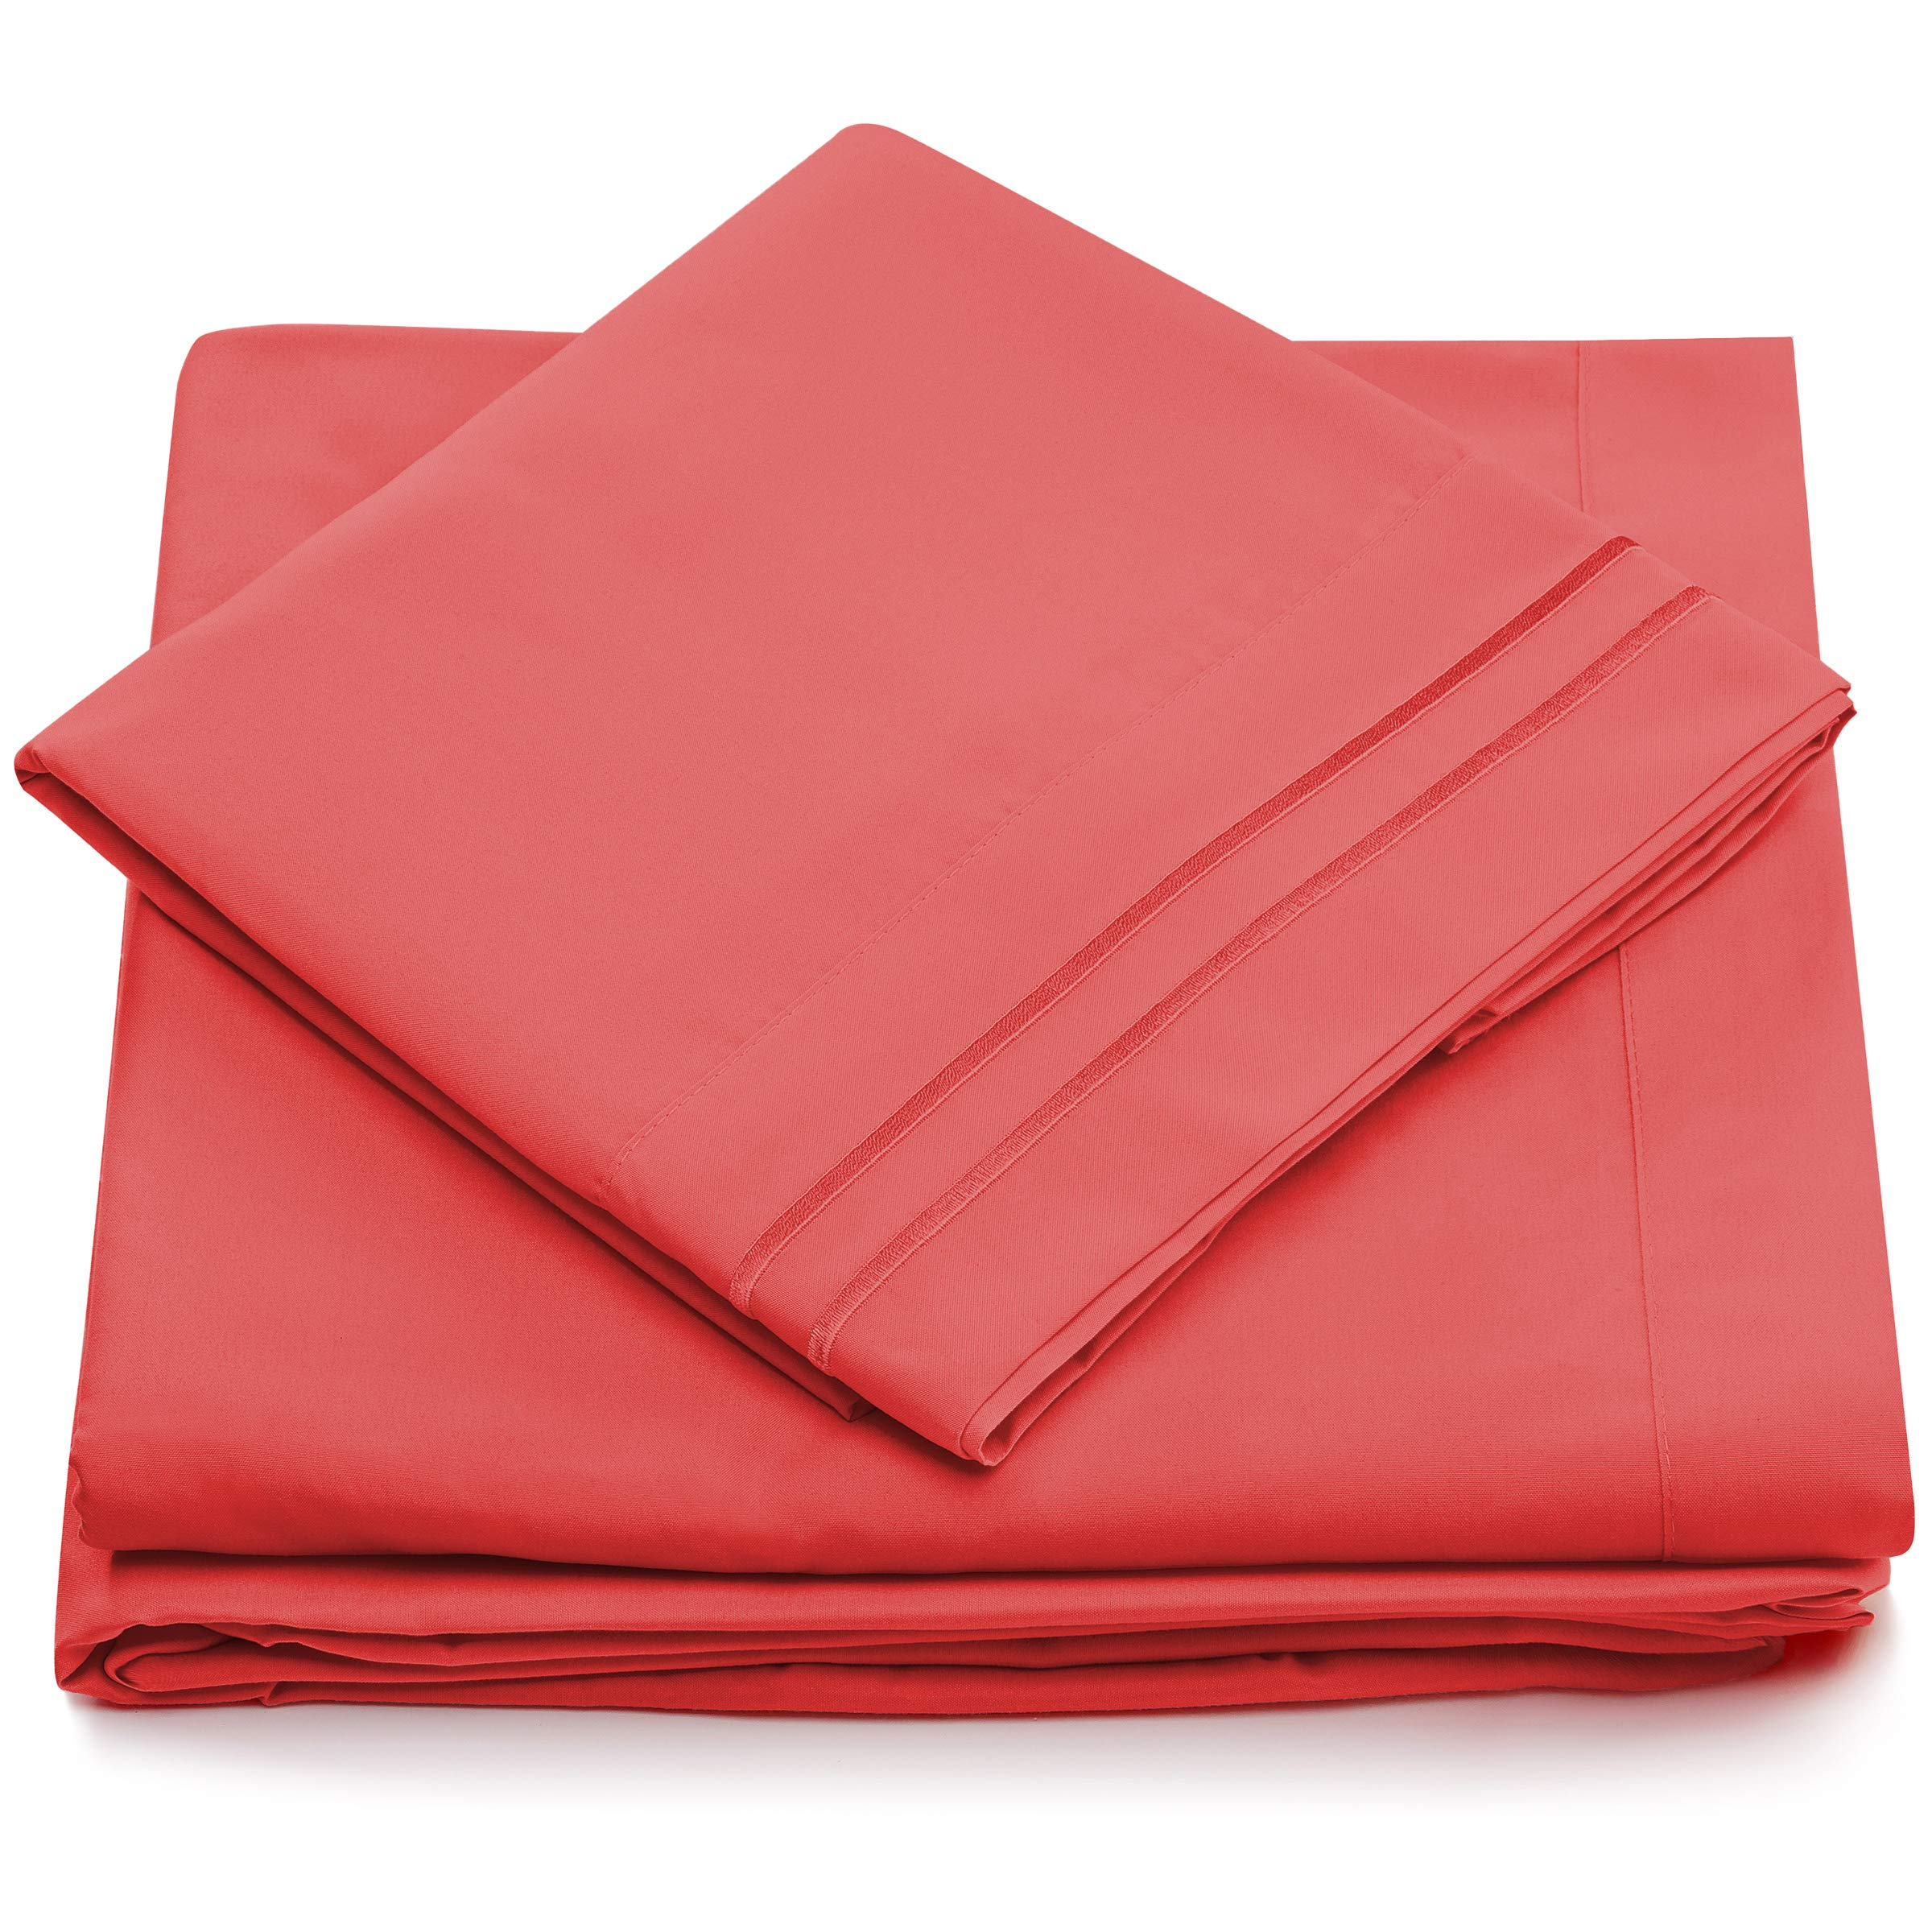 Cosy House Collection Twin Size Bed Sheets - Brink Pink Bedding Set - Deep Pocket - Extra Soft Luxury Hotel Sheets - Hypoallergenic - Cool & Breathable - Wrinkle, Stain, Fade Resistant - 3 Piece